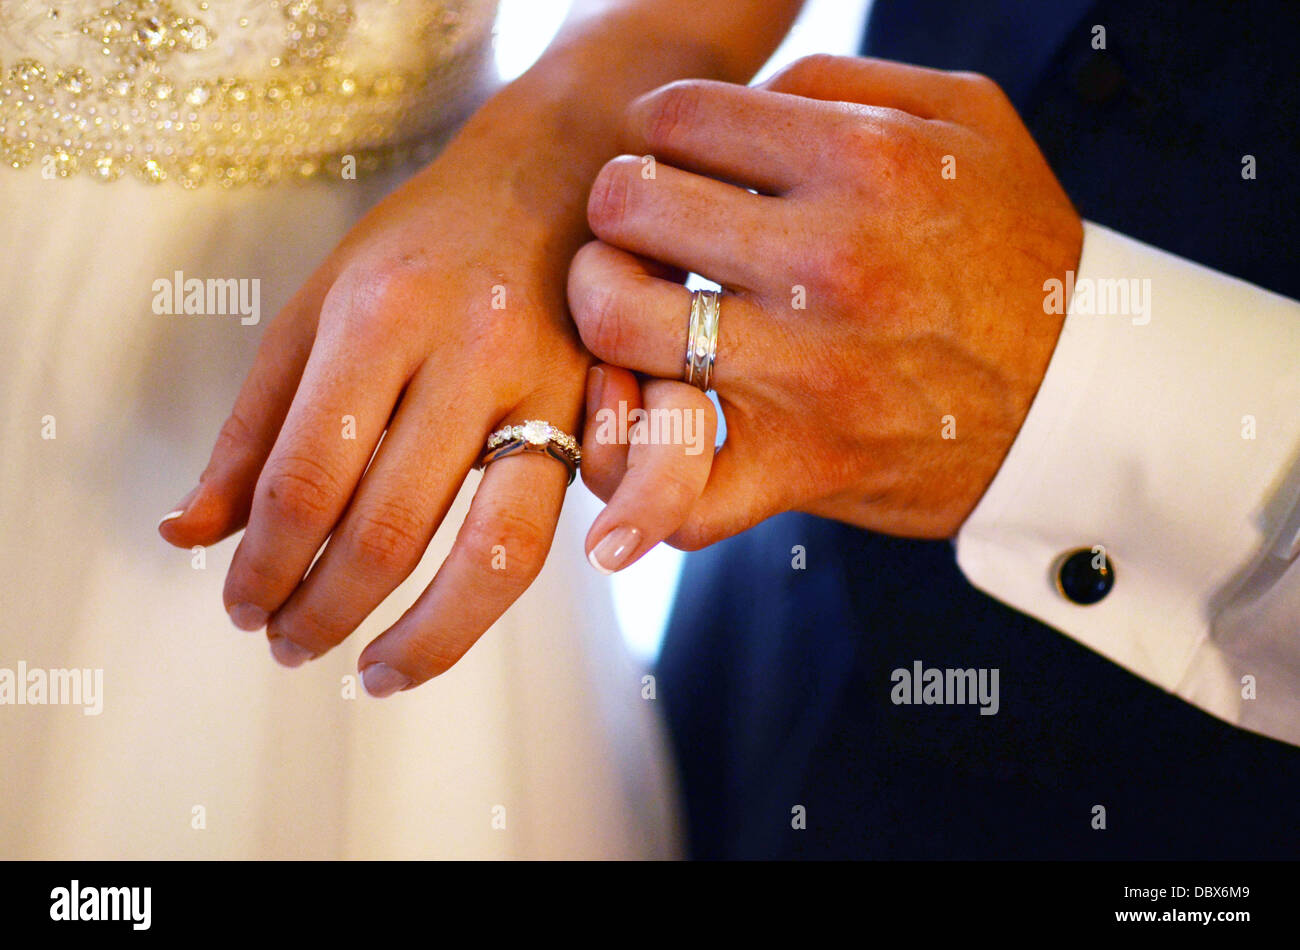 Newlywed bride and groom pinky promise after exchanging rings - Stock Image